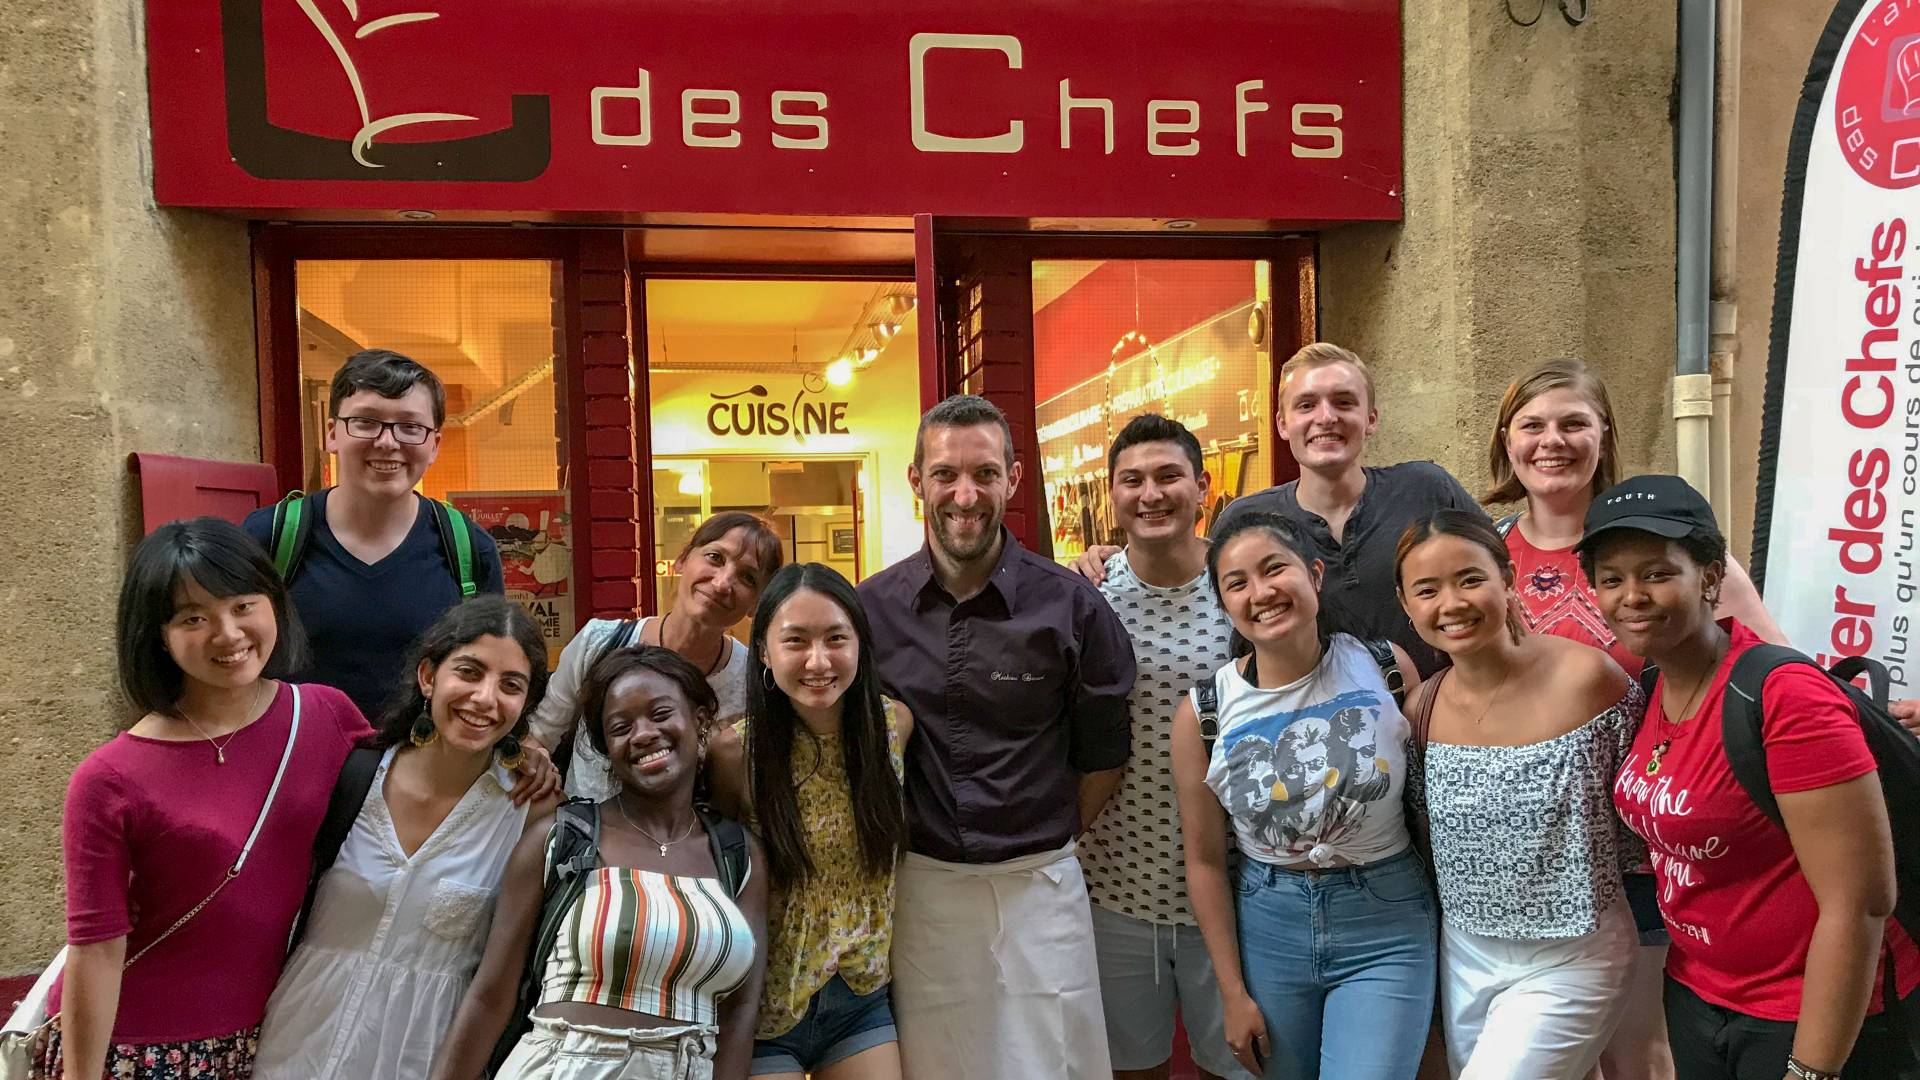 Students and chef posing outside cafe in France